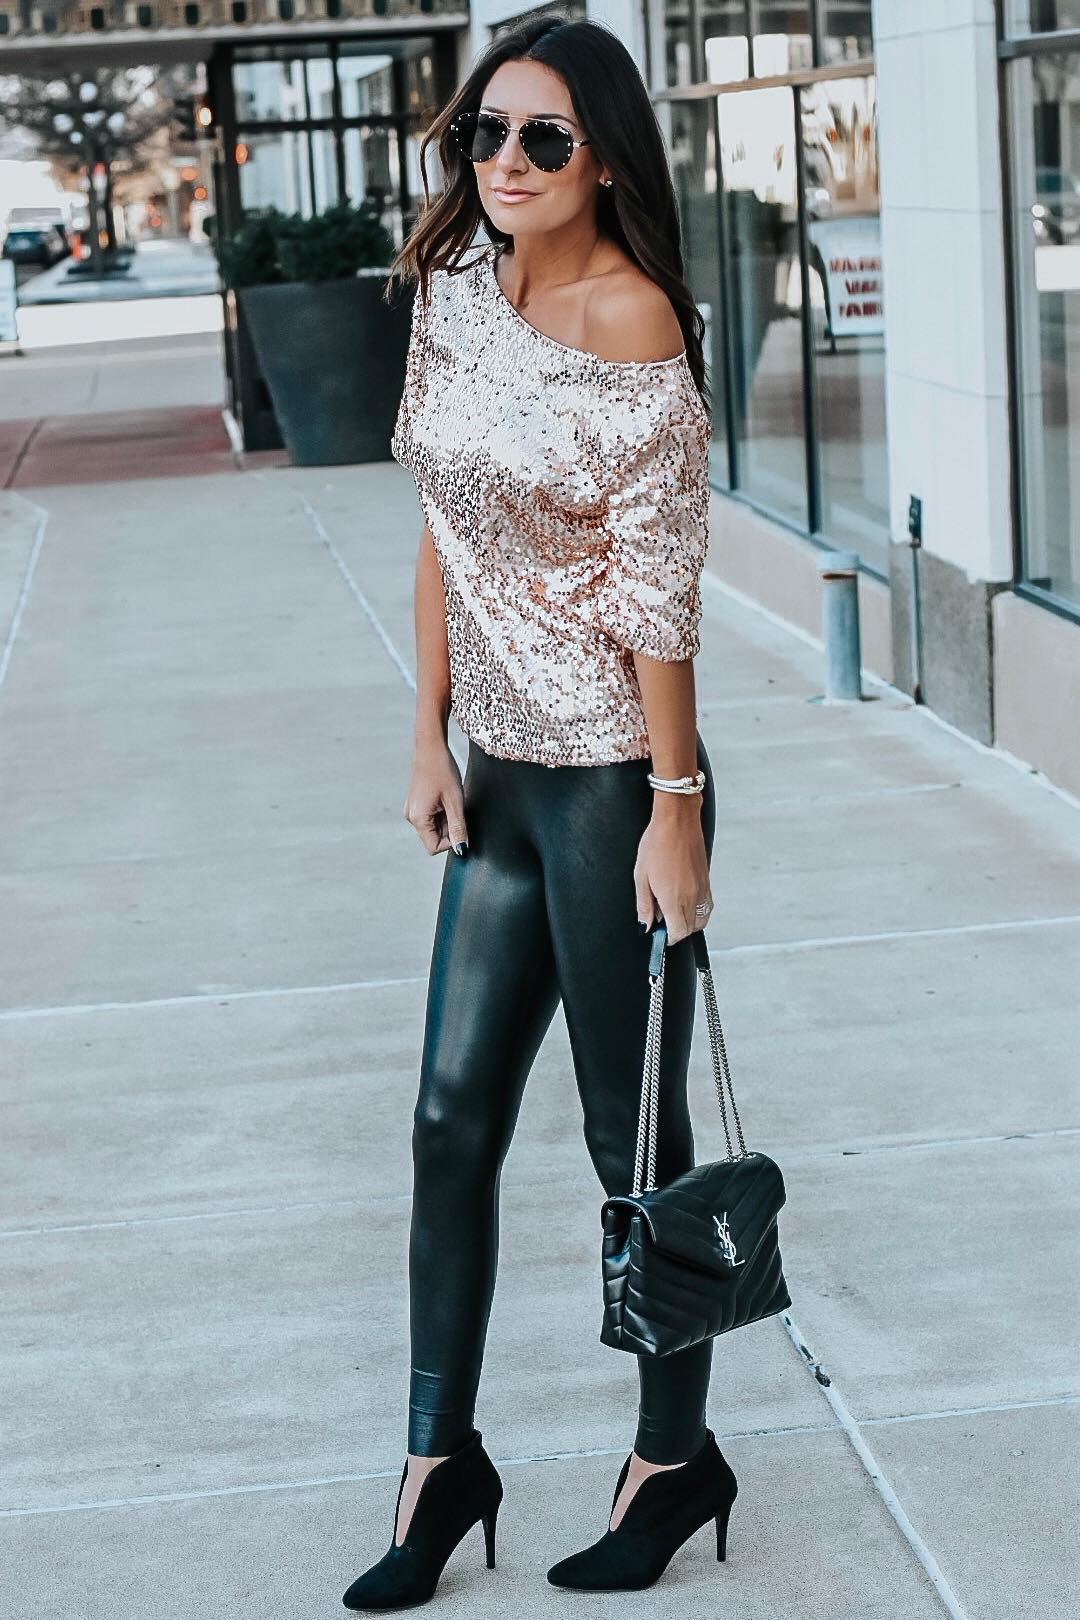 a2c2ec06920 With New Years Eve right around the corner it is time to start the outfit  planning process to ring in the new year!